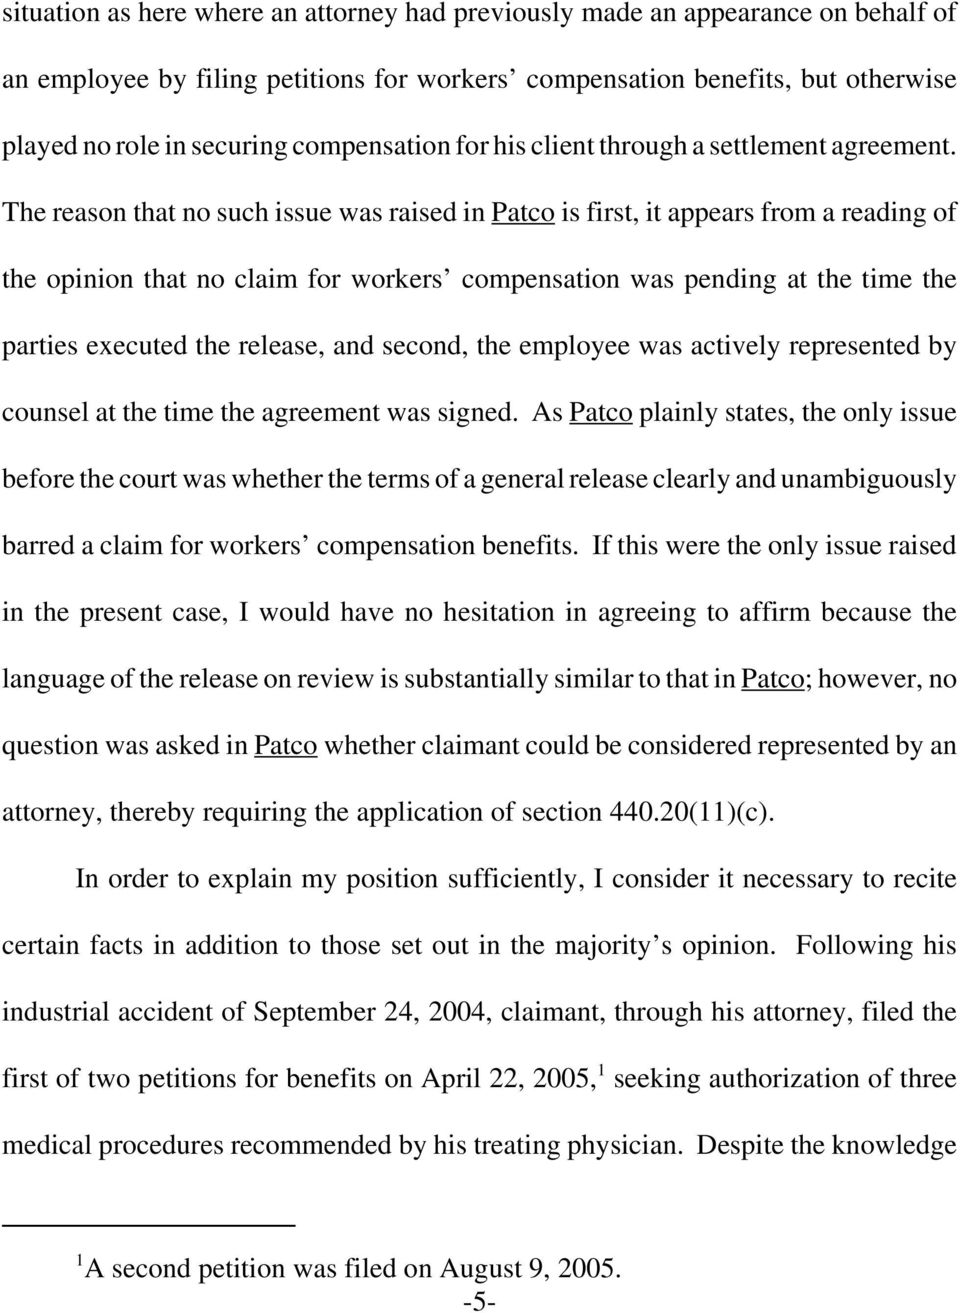 The reason that no such issue was raised in Patco is first, it appears from a reading of the opinion that no claim for workers compensation was pending at the time the parties executed the release,